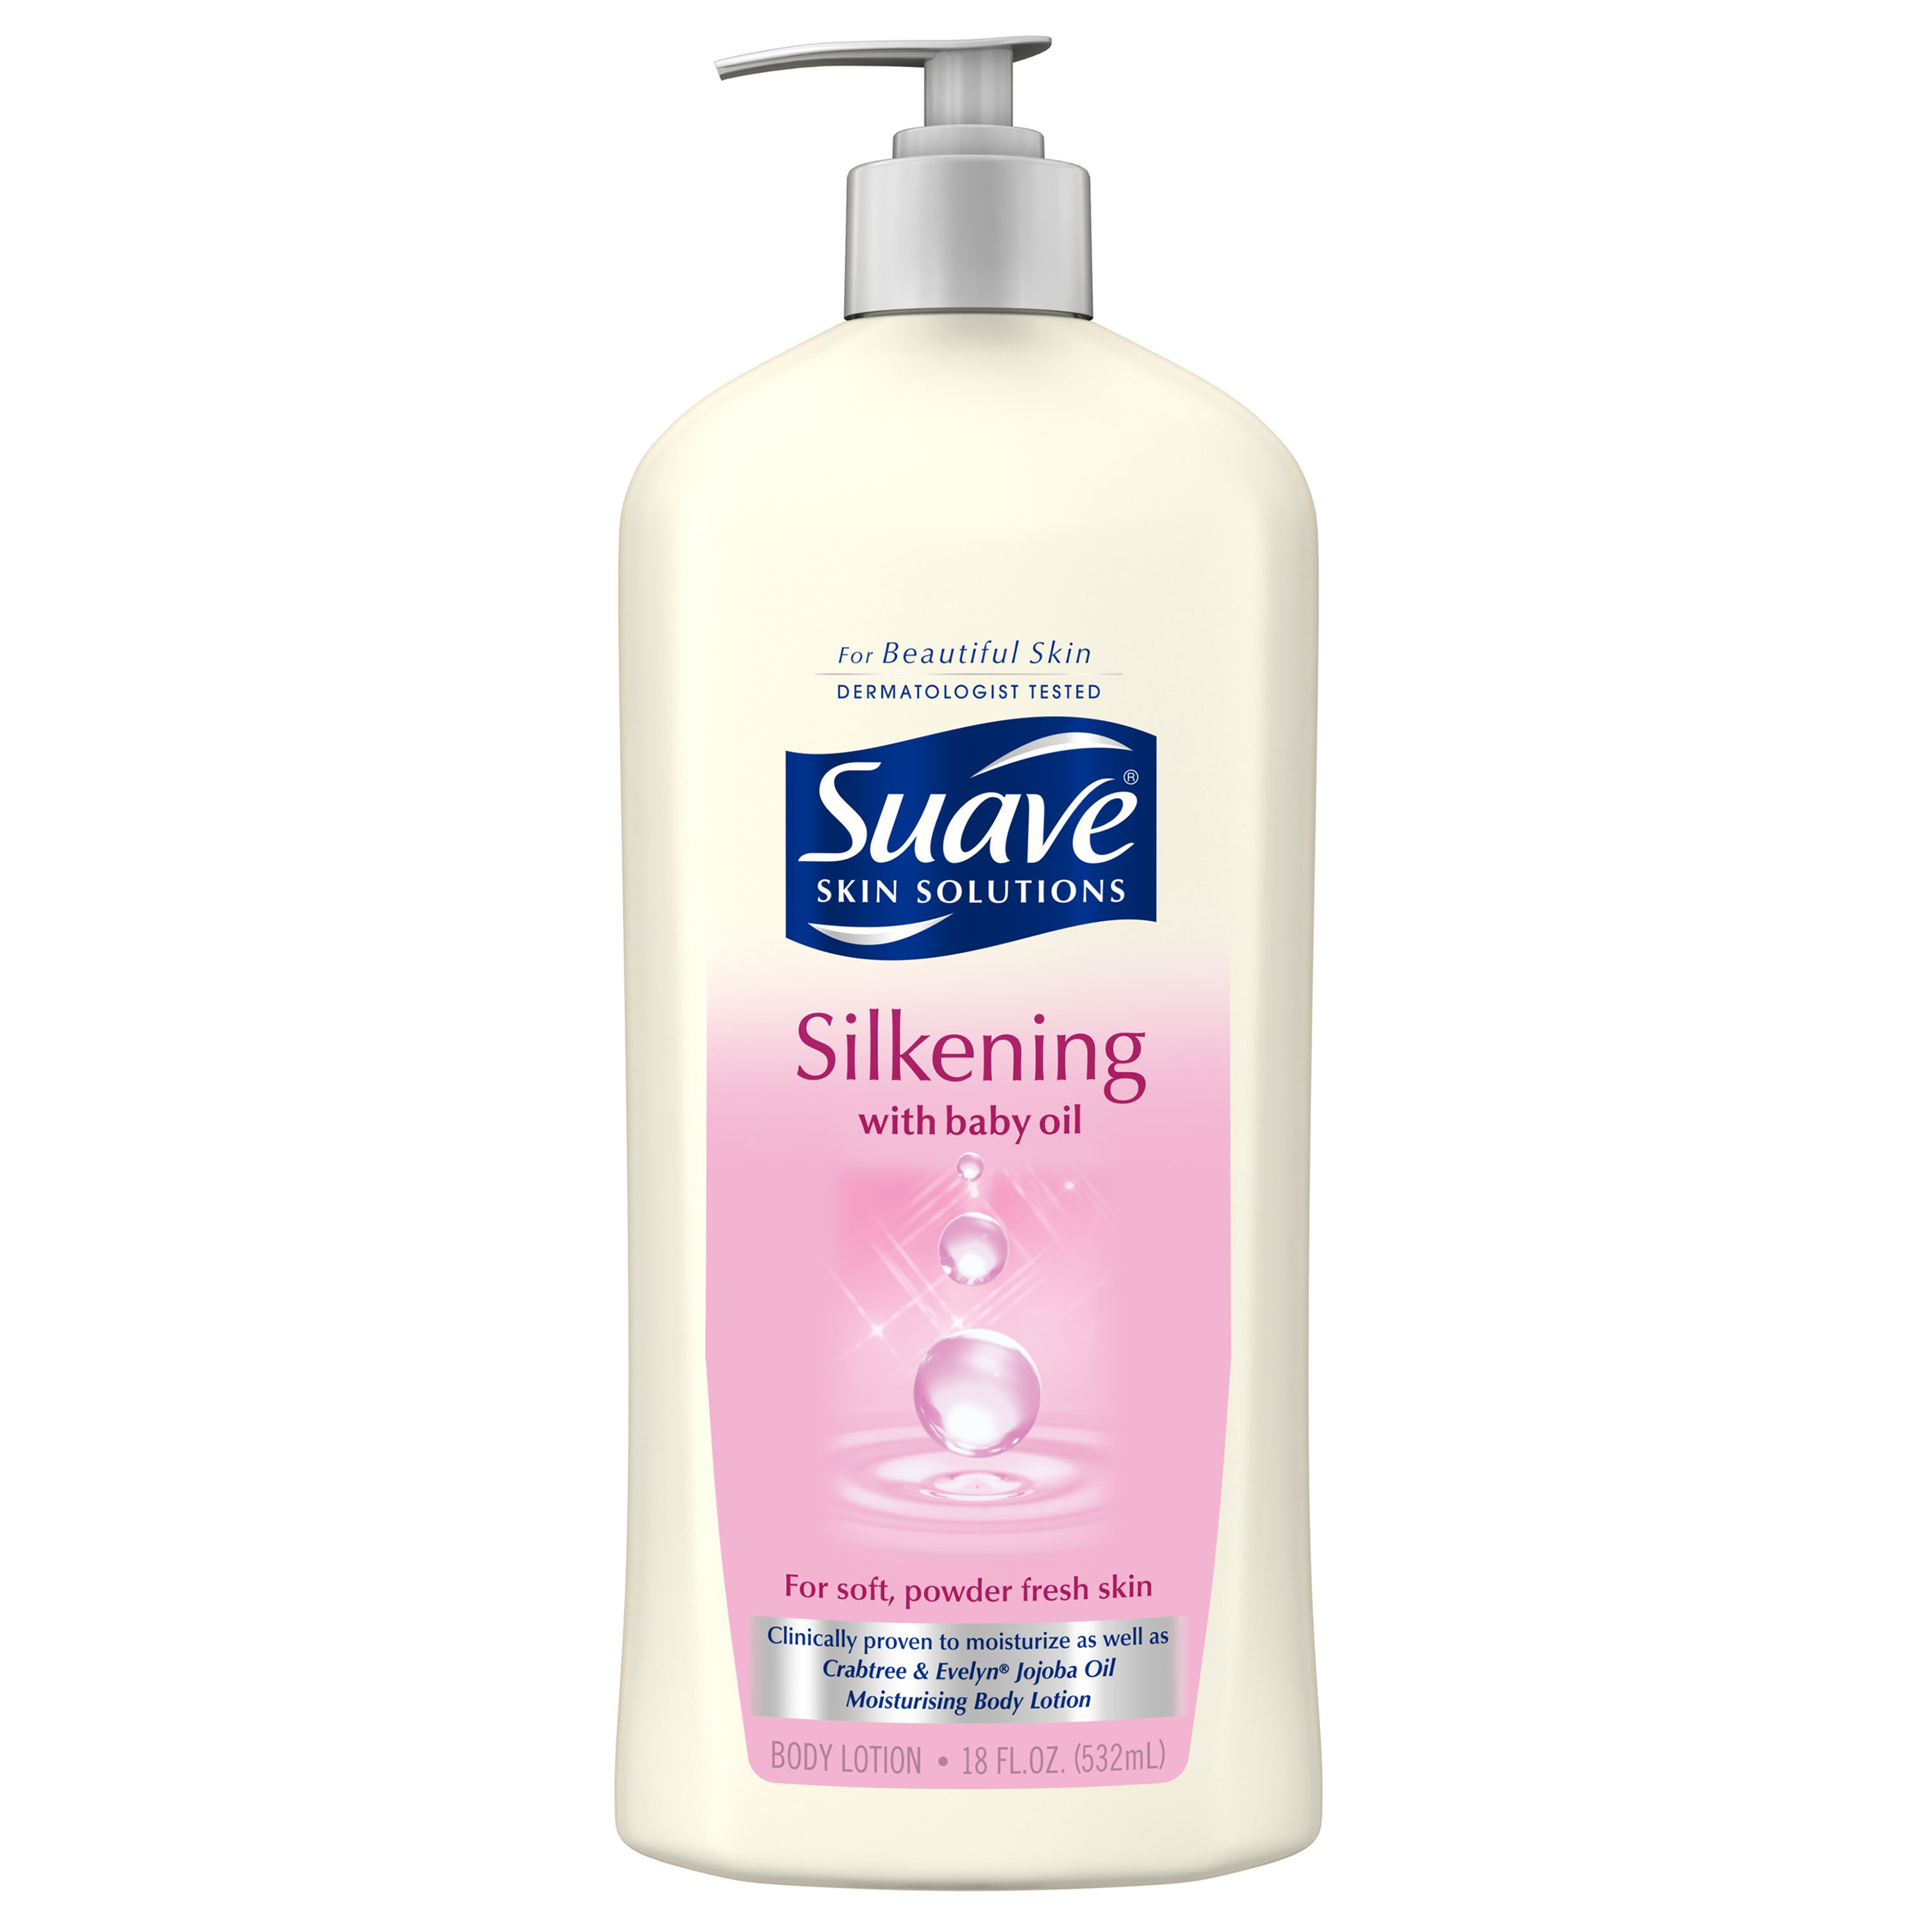 Suave Skin Solutions Silkening with Baby Oil Body Lotion, 18 oz